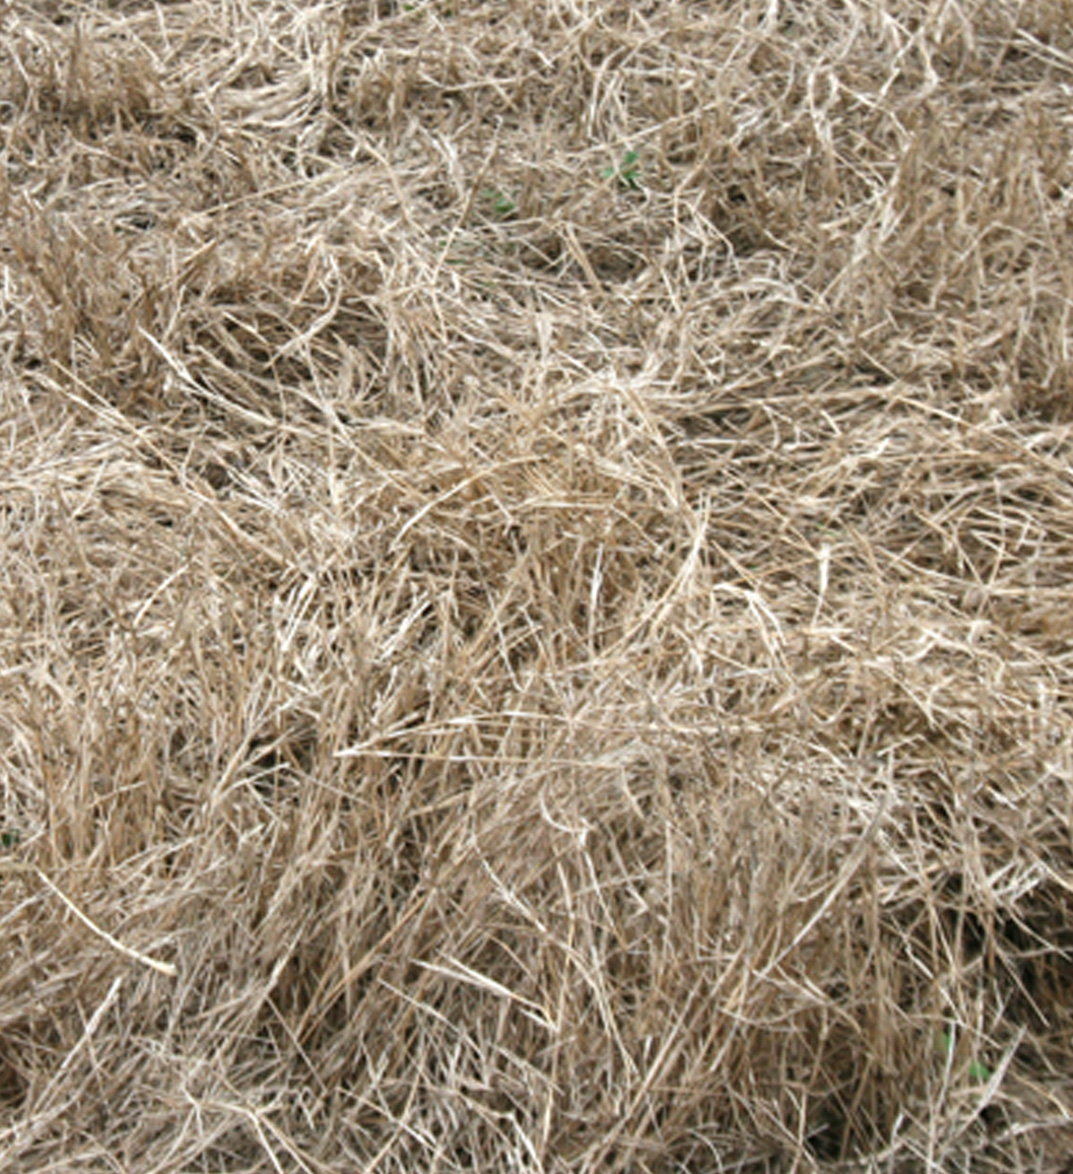 Here is a picture of poor forage quality.